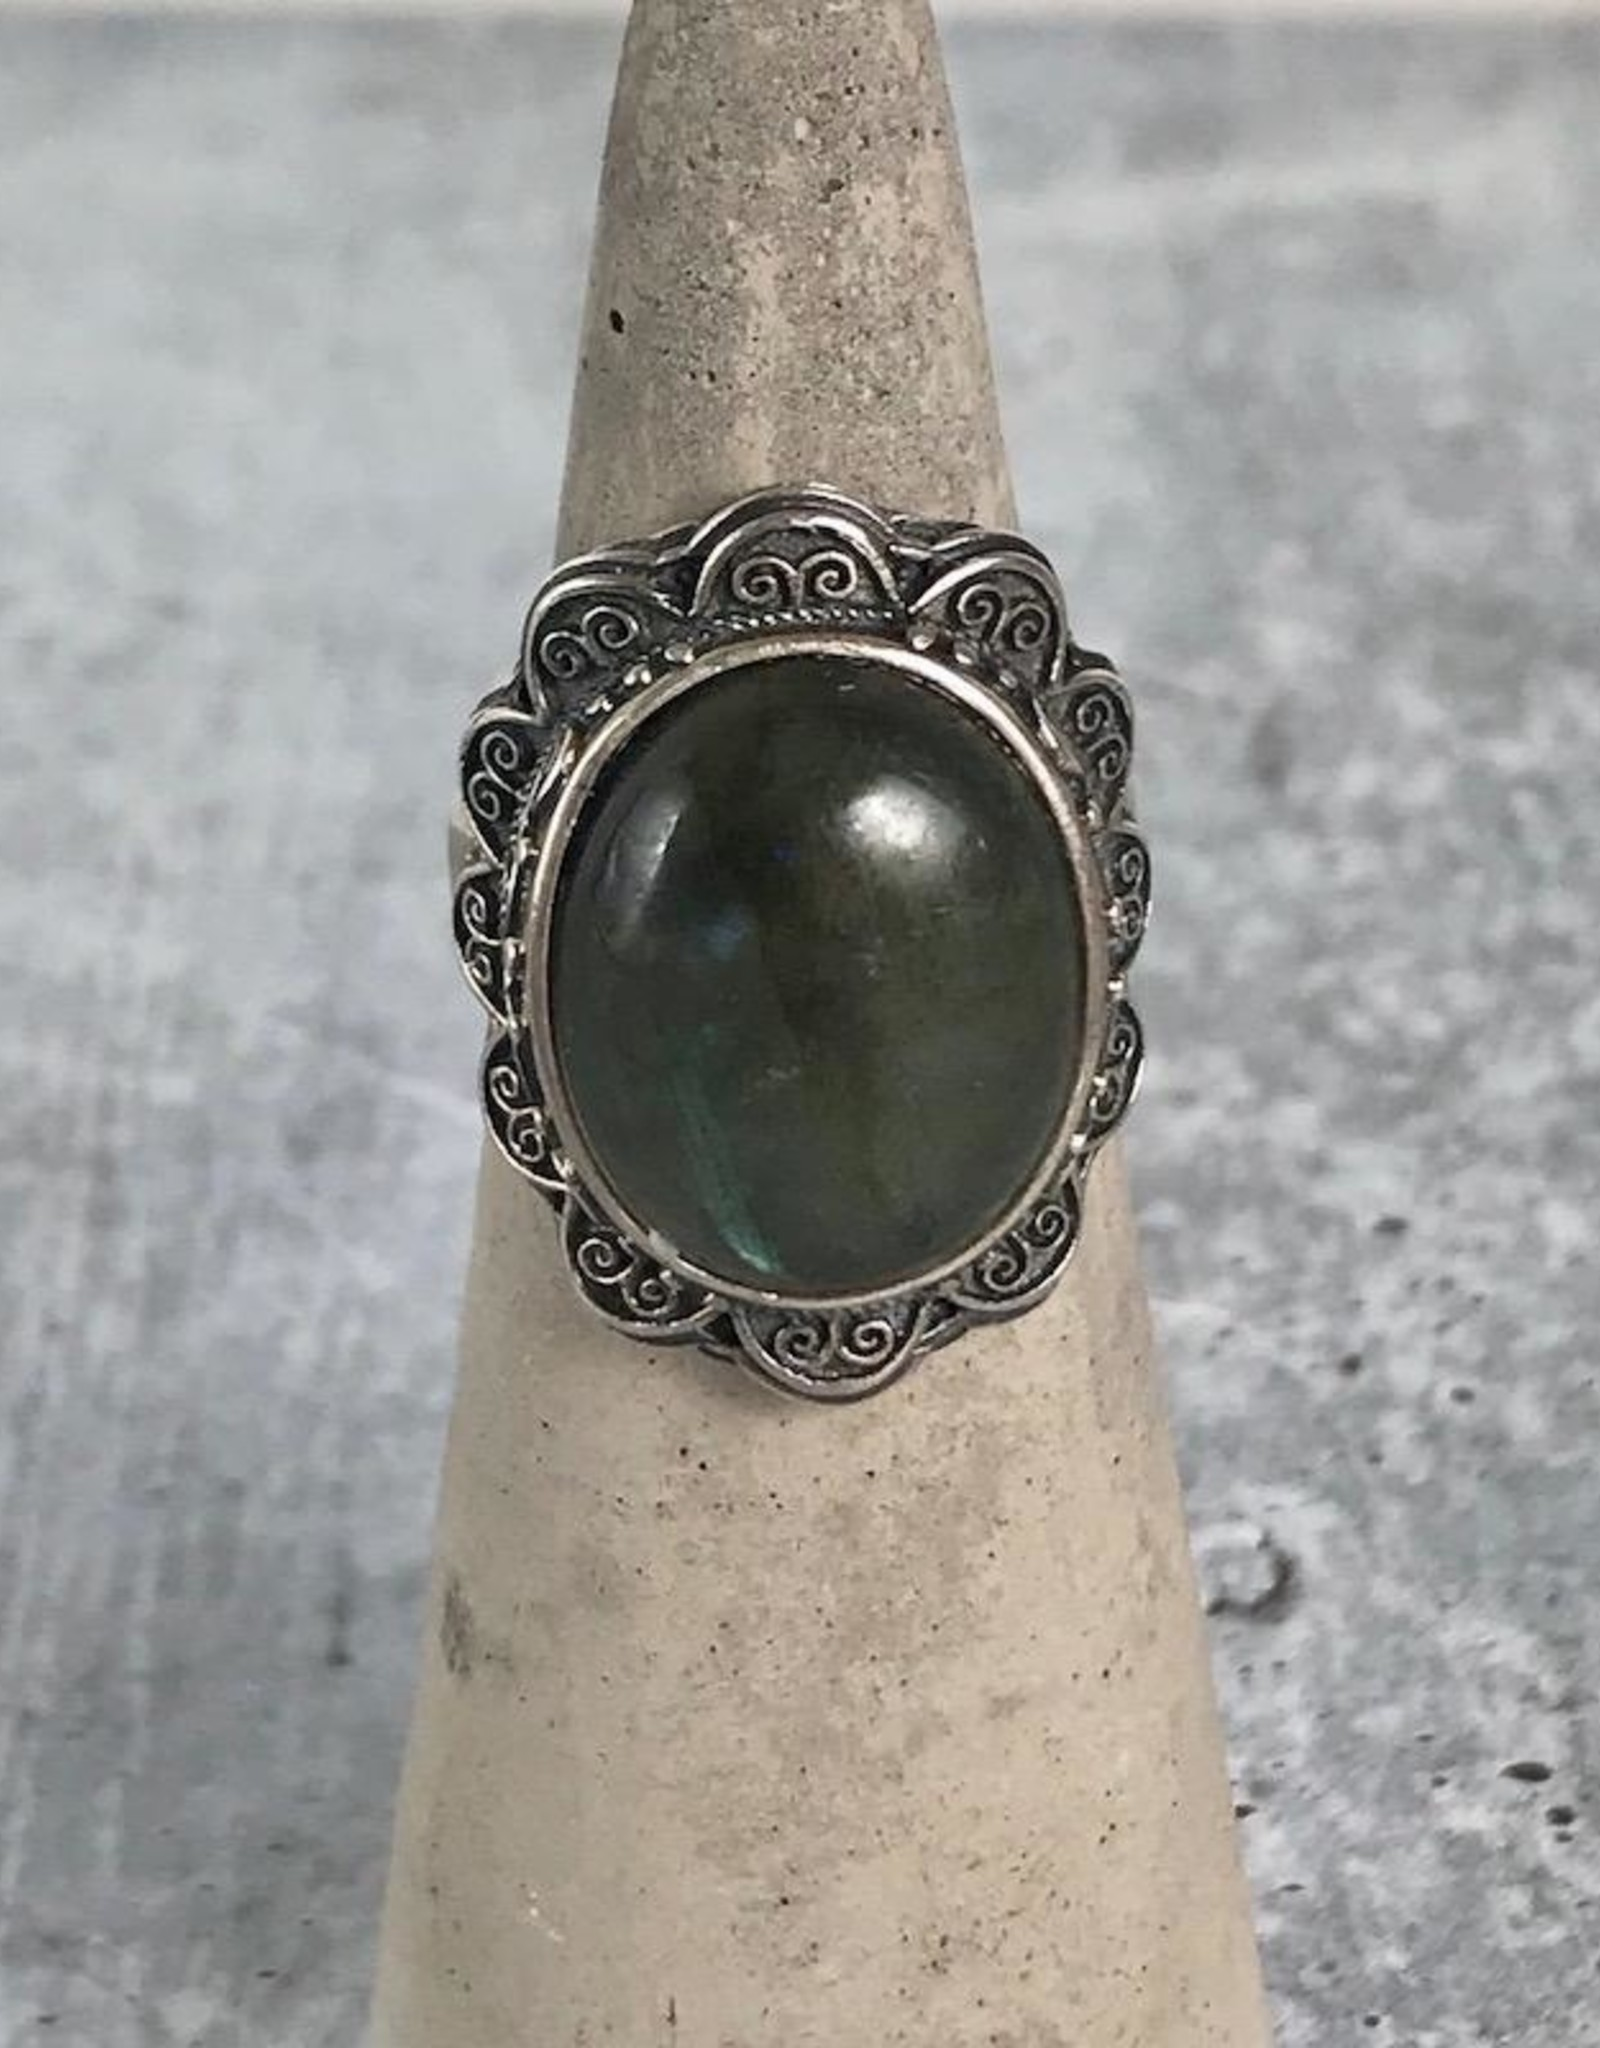 TigerMtn Sterling Silver Ring with Large bezel set Labradorite stone, Size 8